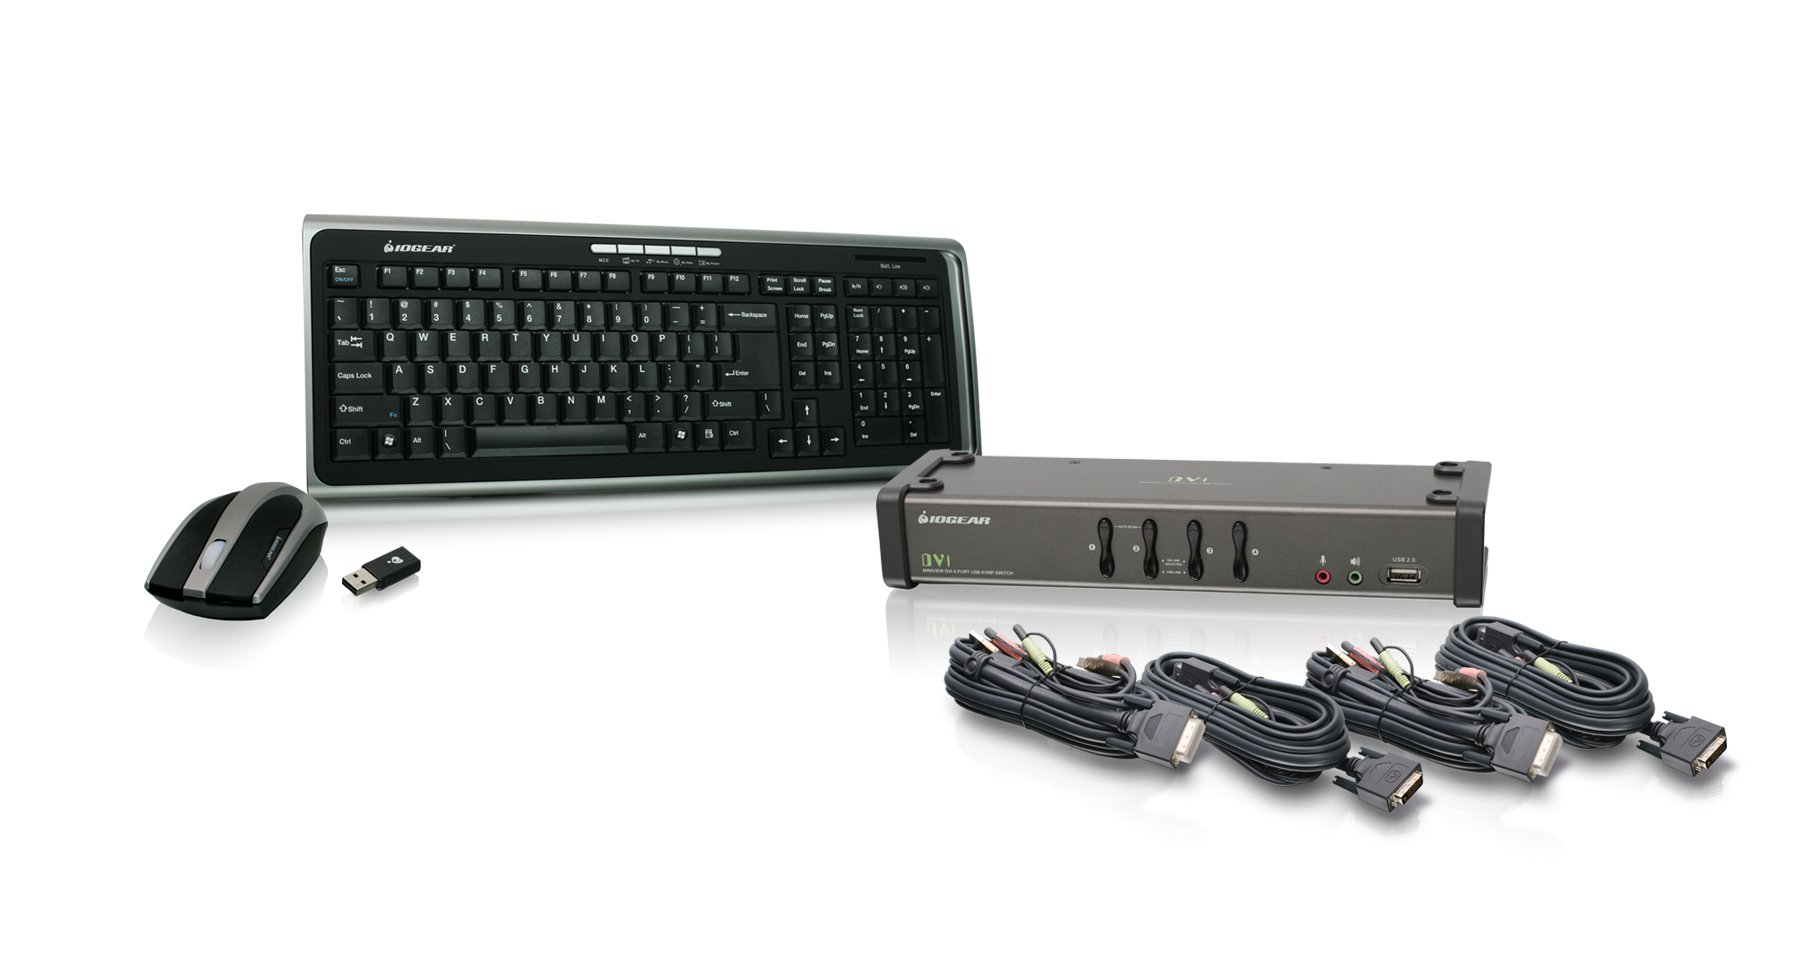 IOGEAR 4-Port DVI KVMP Switch with Cables and Wireless Media Center Keyboard and Mouse, GCS1104-KM1 by IOGEAR